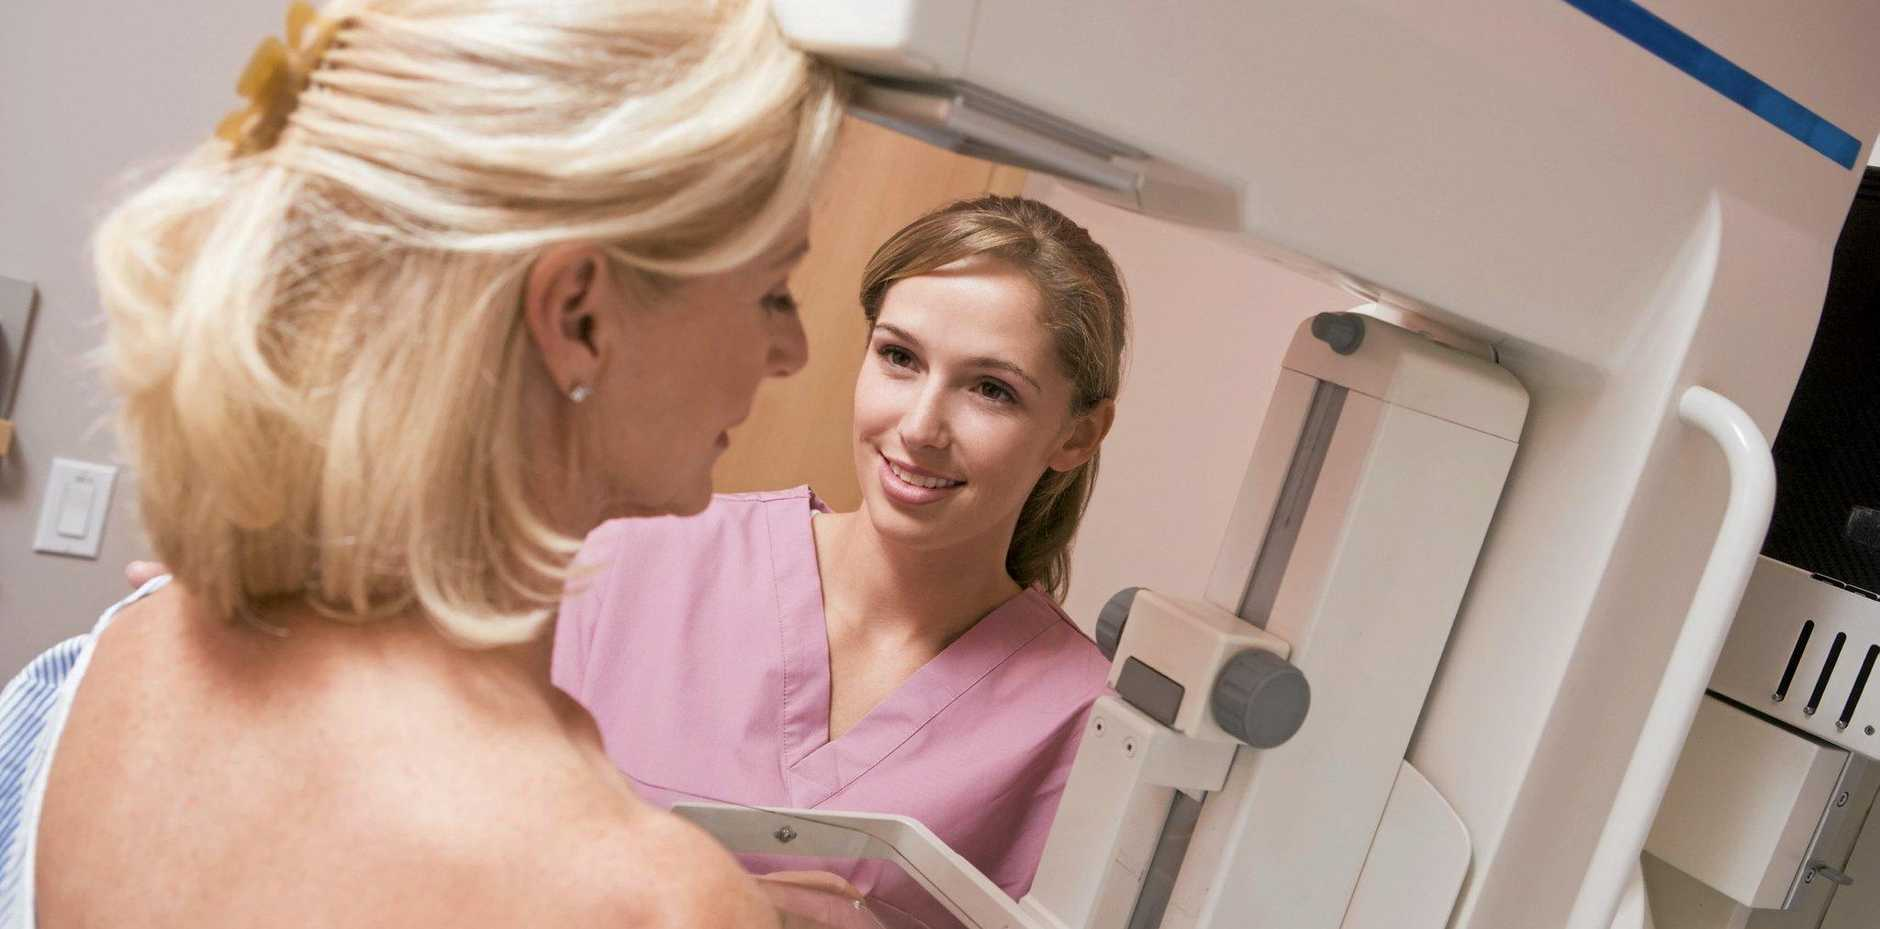 Nurse Assisting Patient Undergoing Mammogram. Photo: file/thinkstock images.